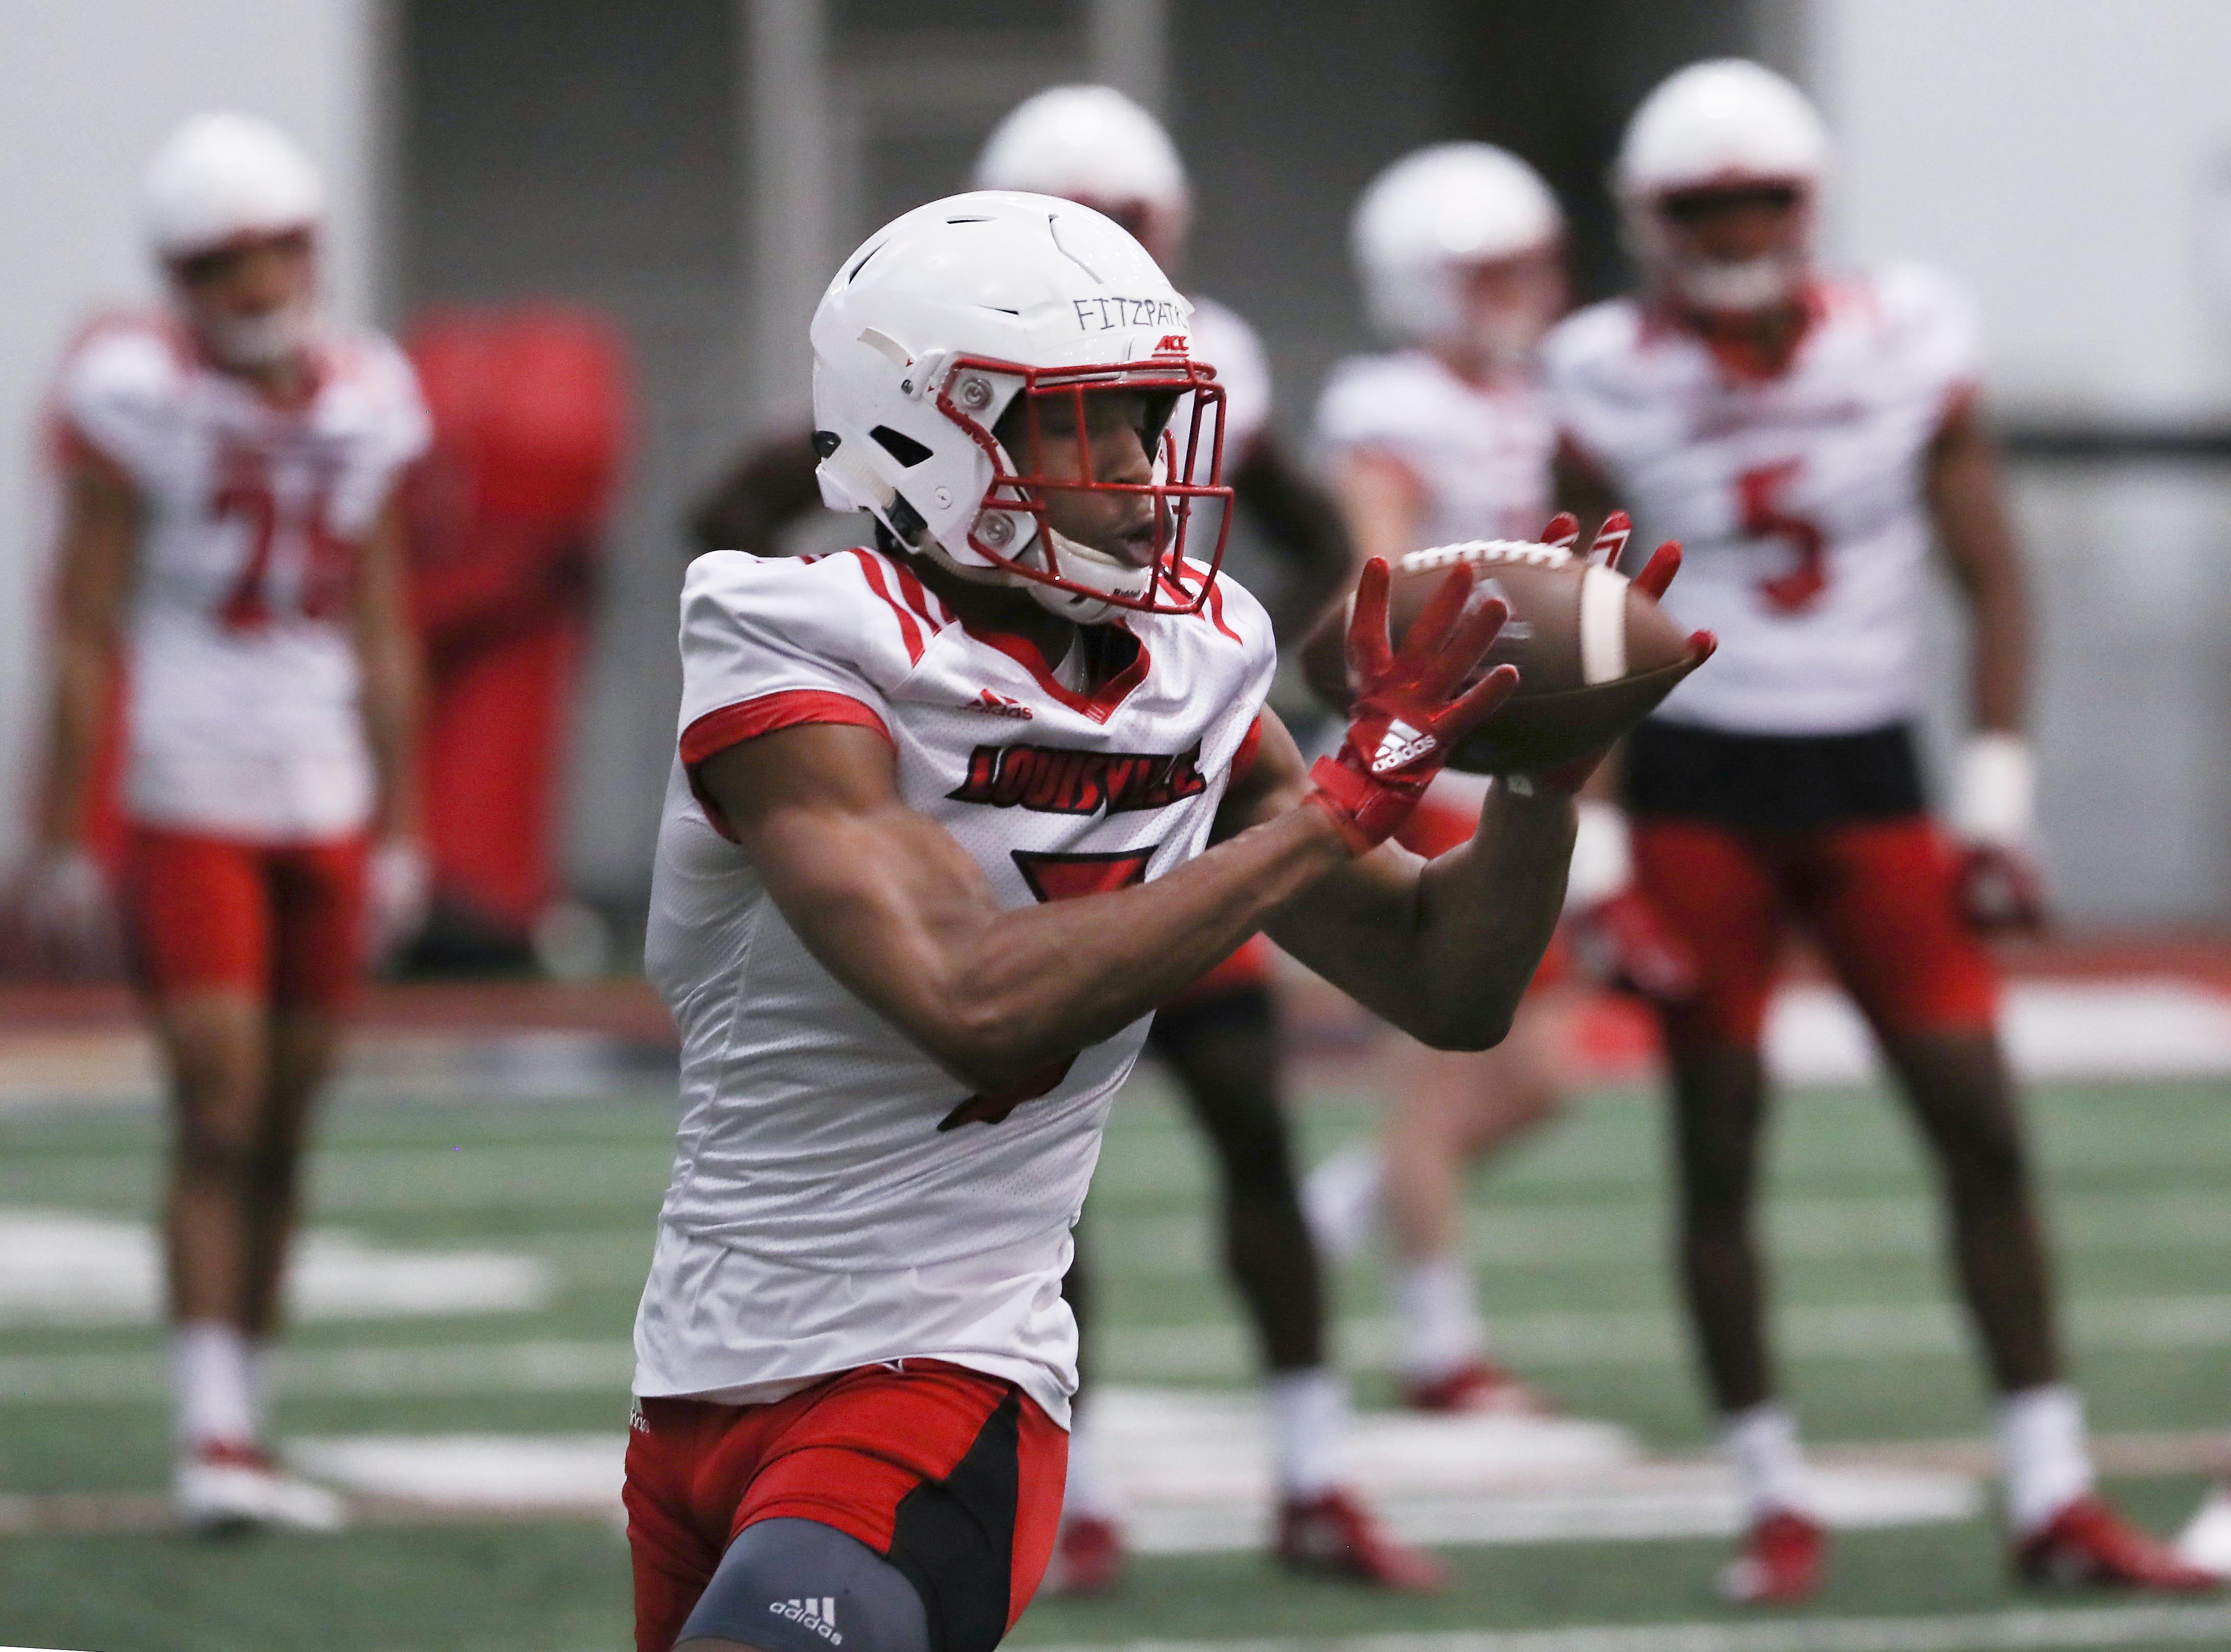 U of L's Dez Fitzpatrick (7) ran a pass route during practice at the Trager Center.